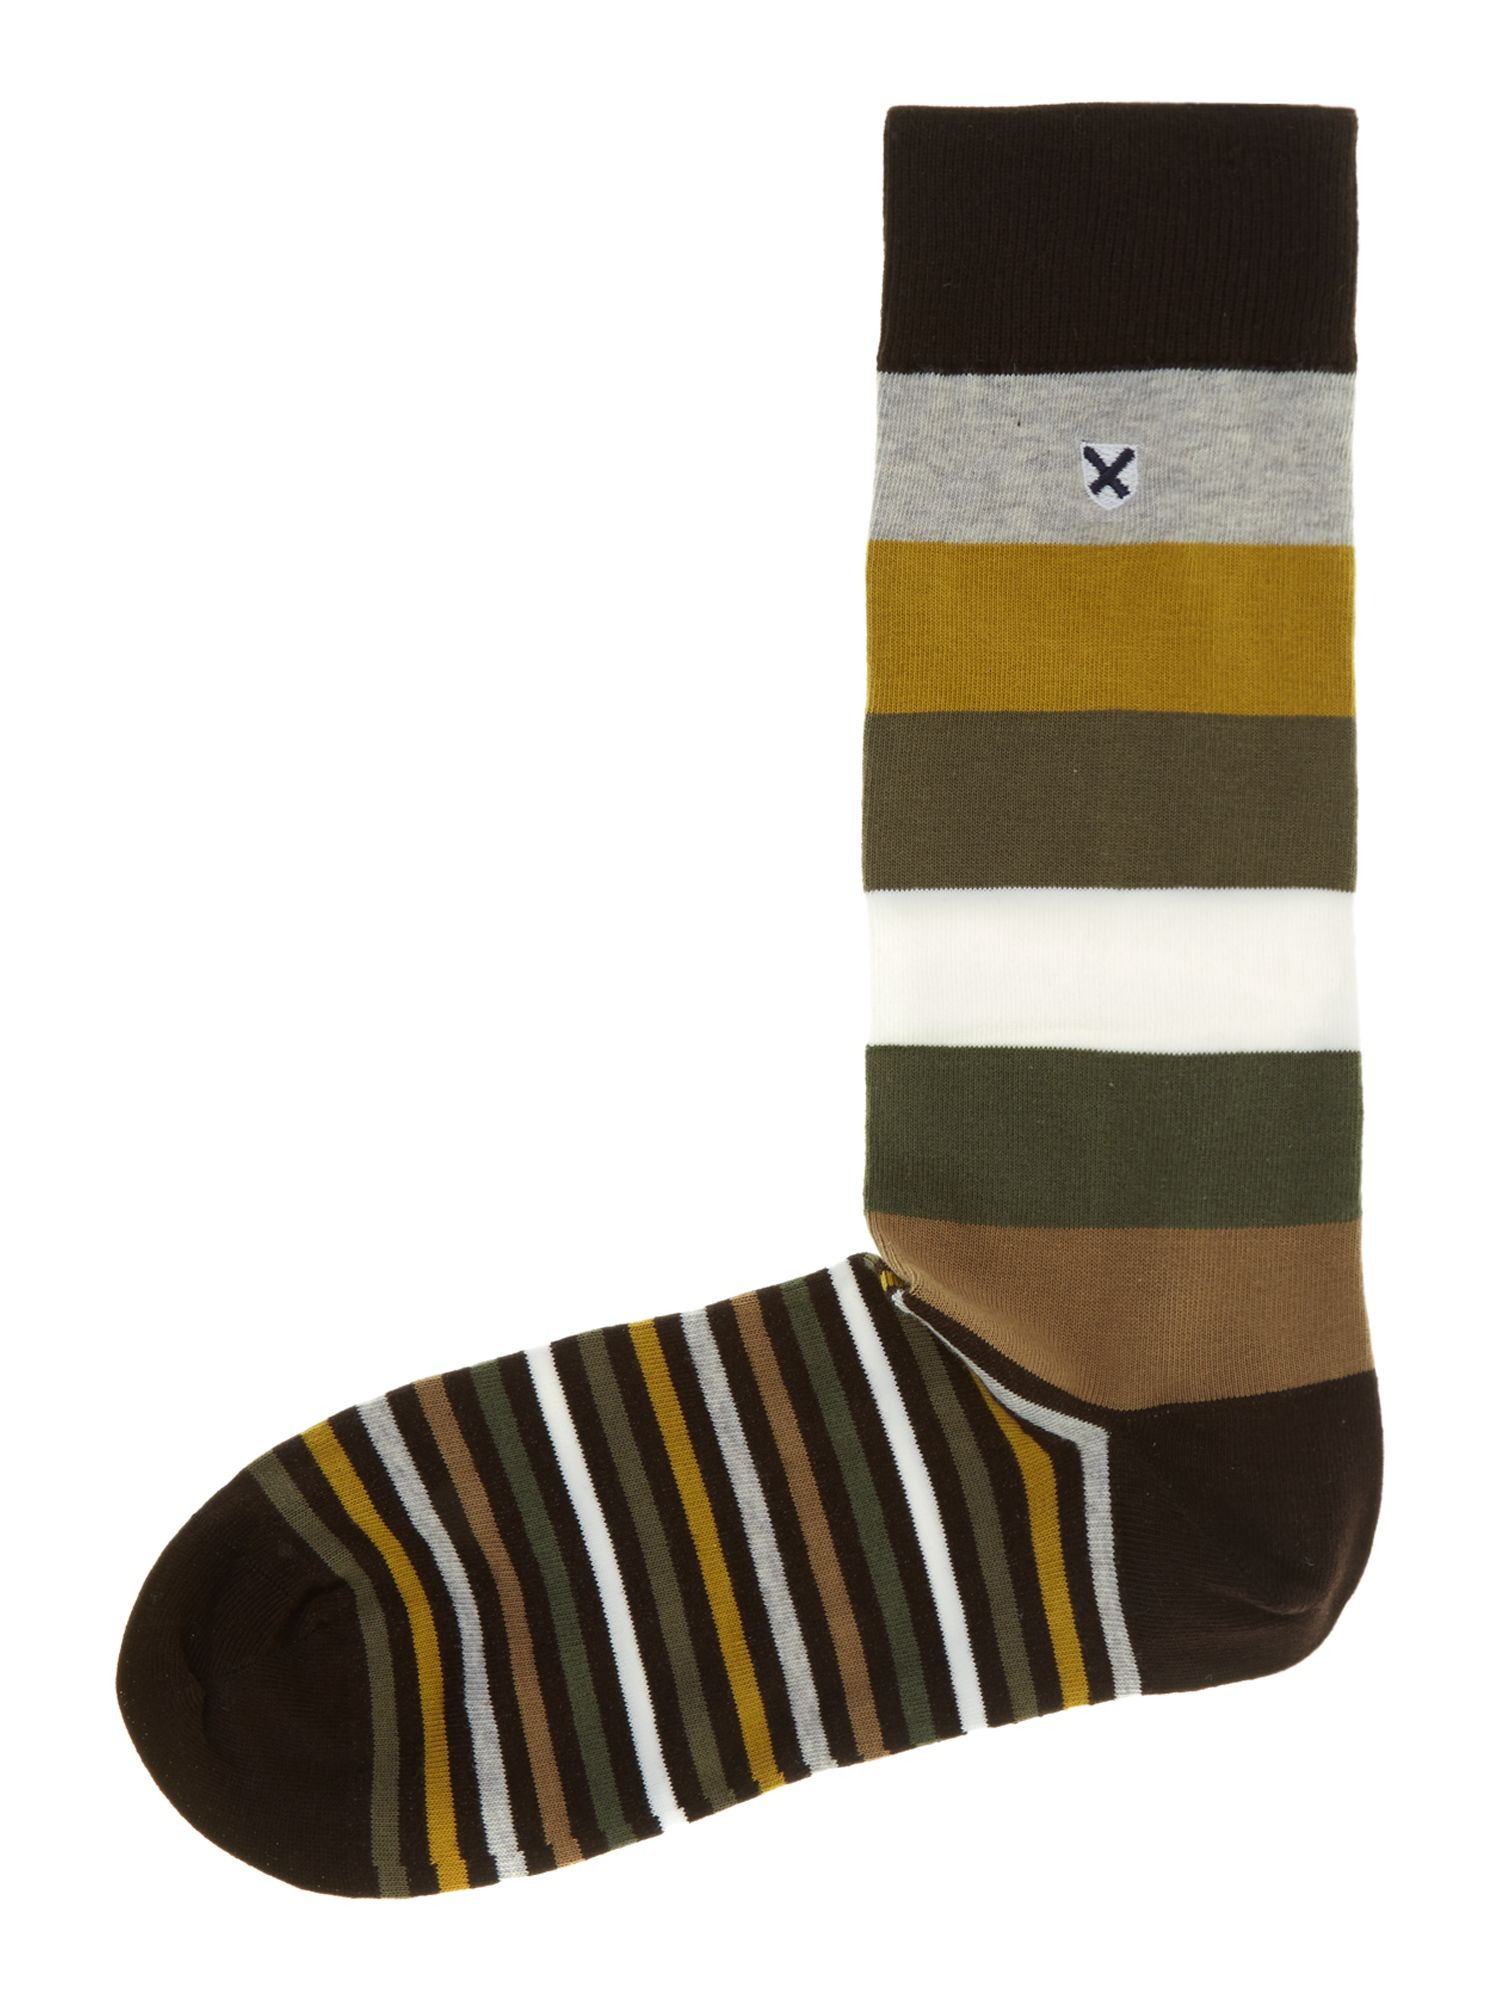 Heywood multistripe sock